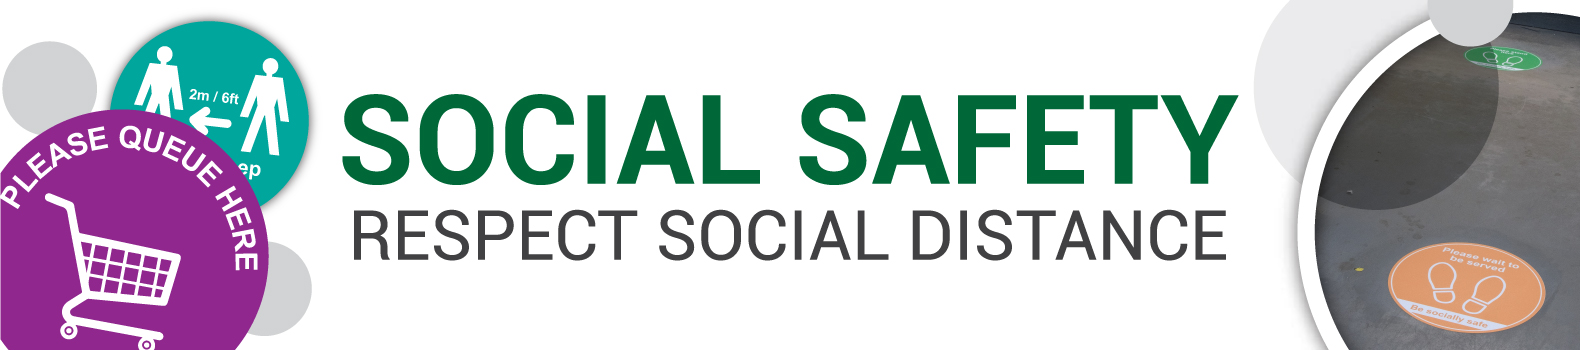 Social Distancing and Safety Signage